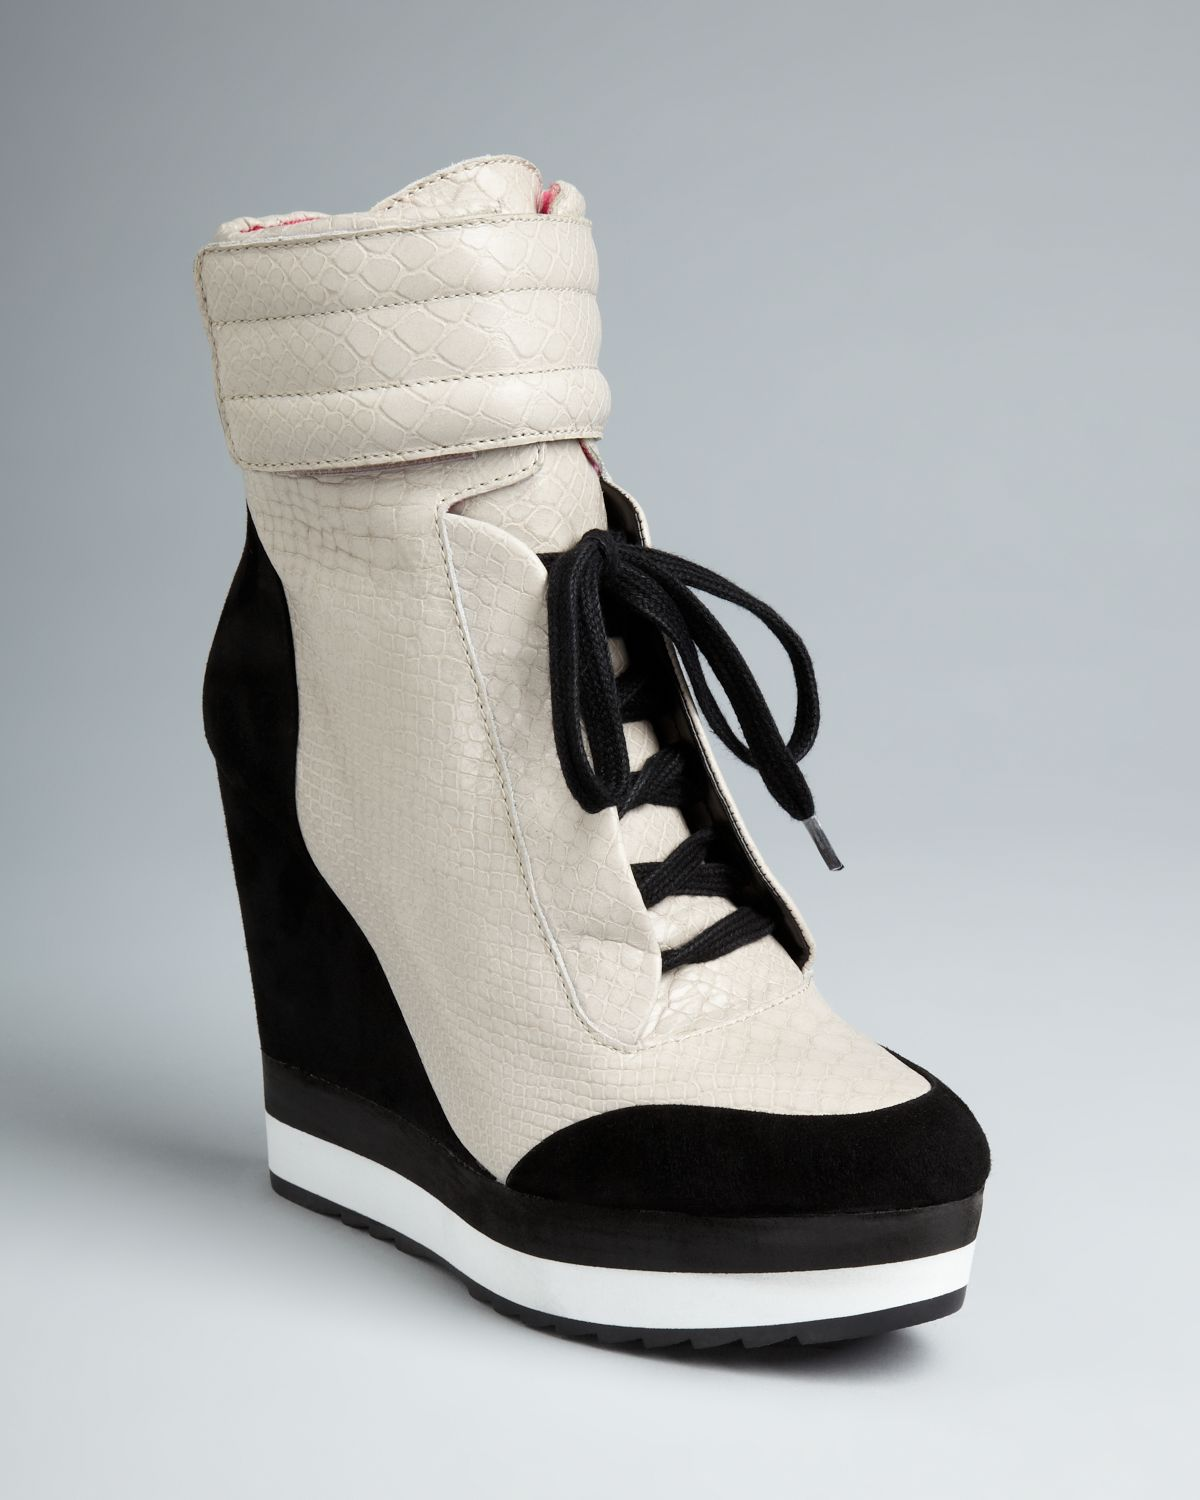 Lyst - Boutique 9 High Top Wedge Sneaker Booties Whispers ...